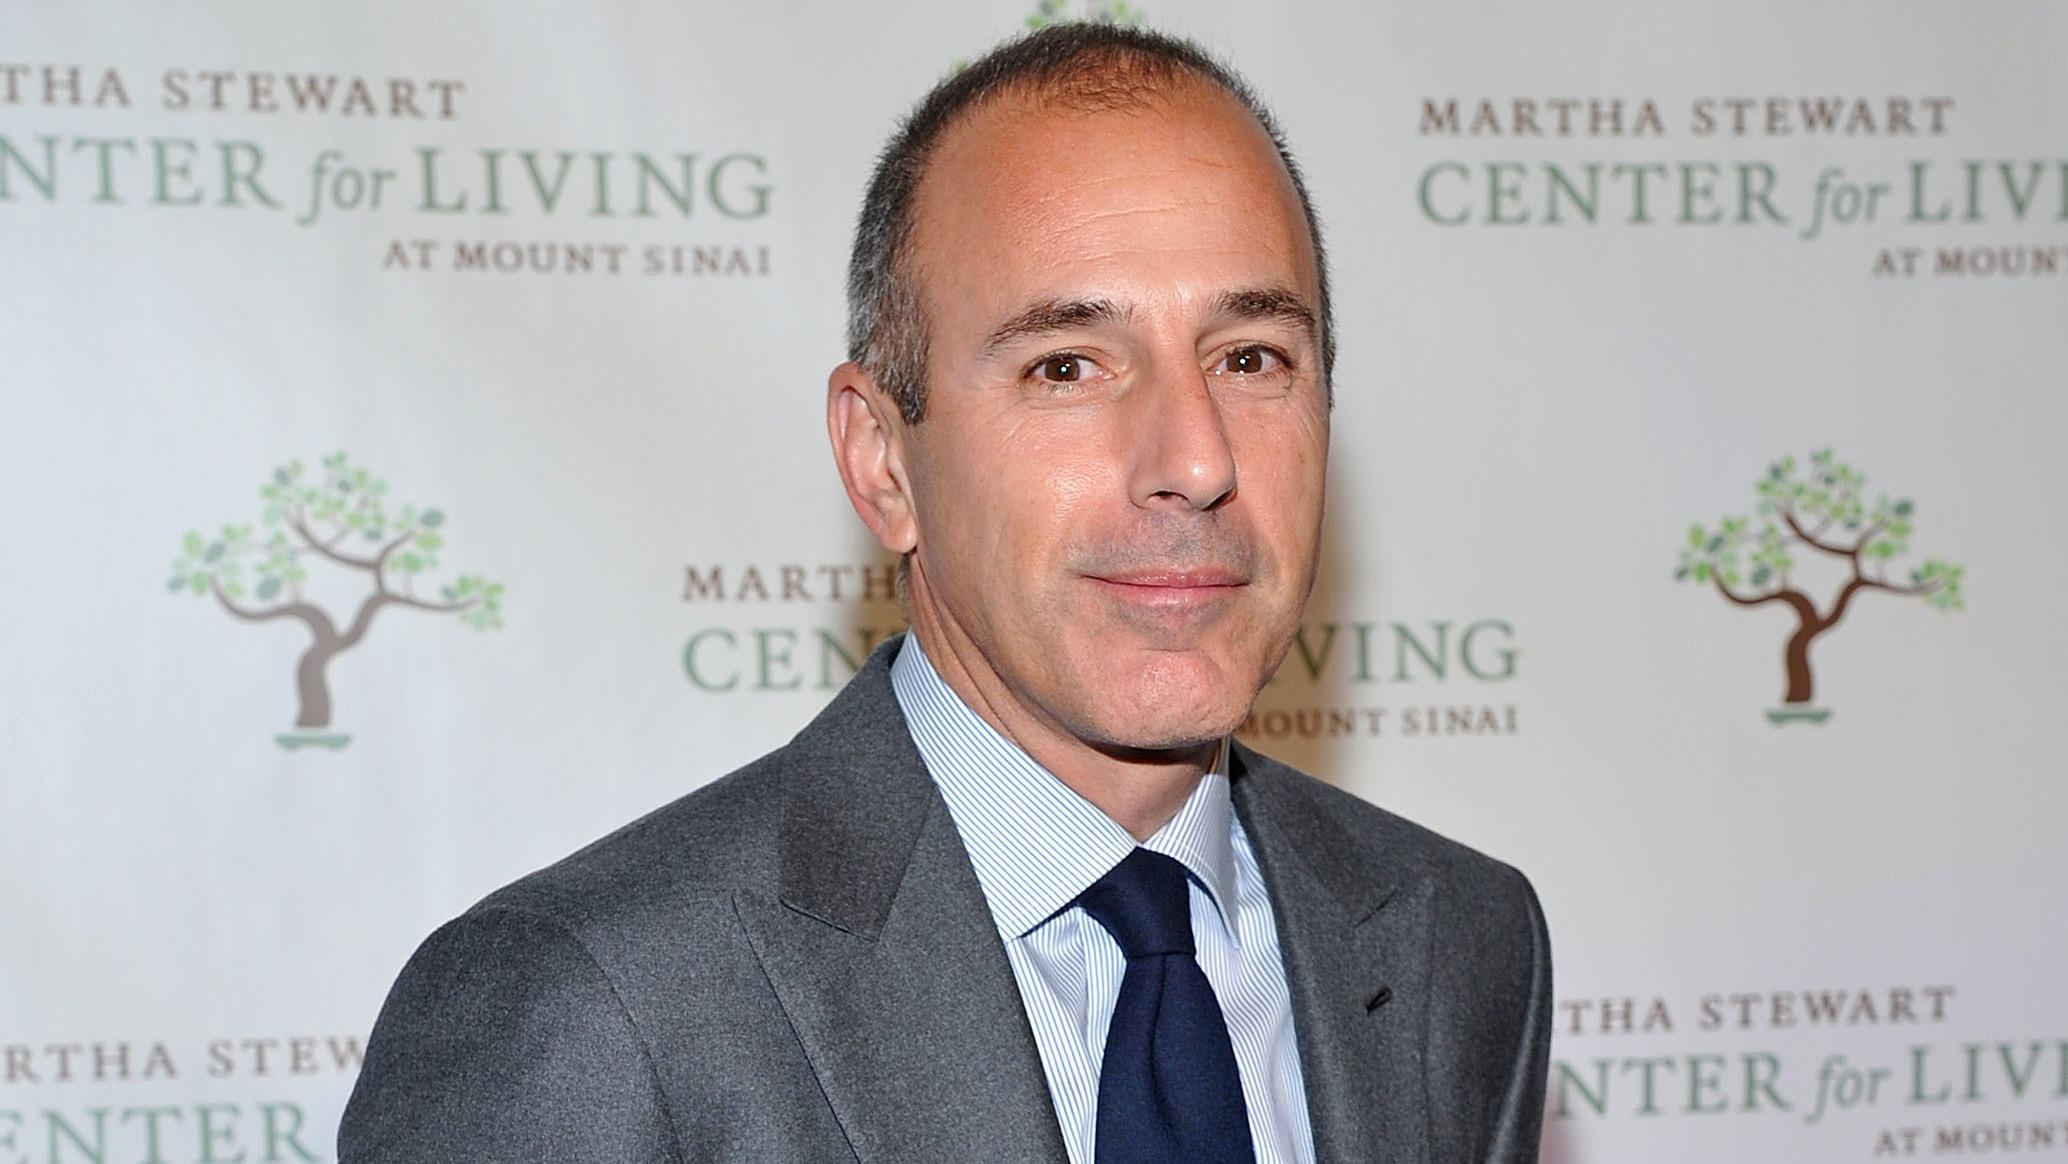 Network execs didn't know of Lauer allegations — NBC investigation